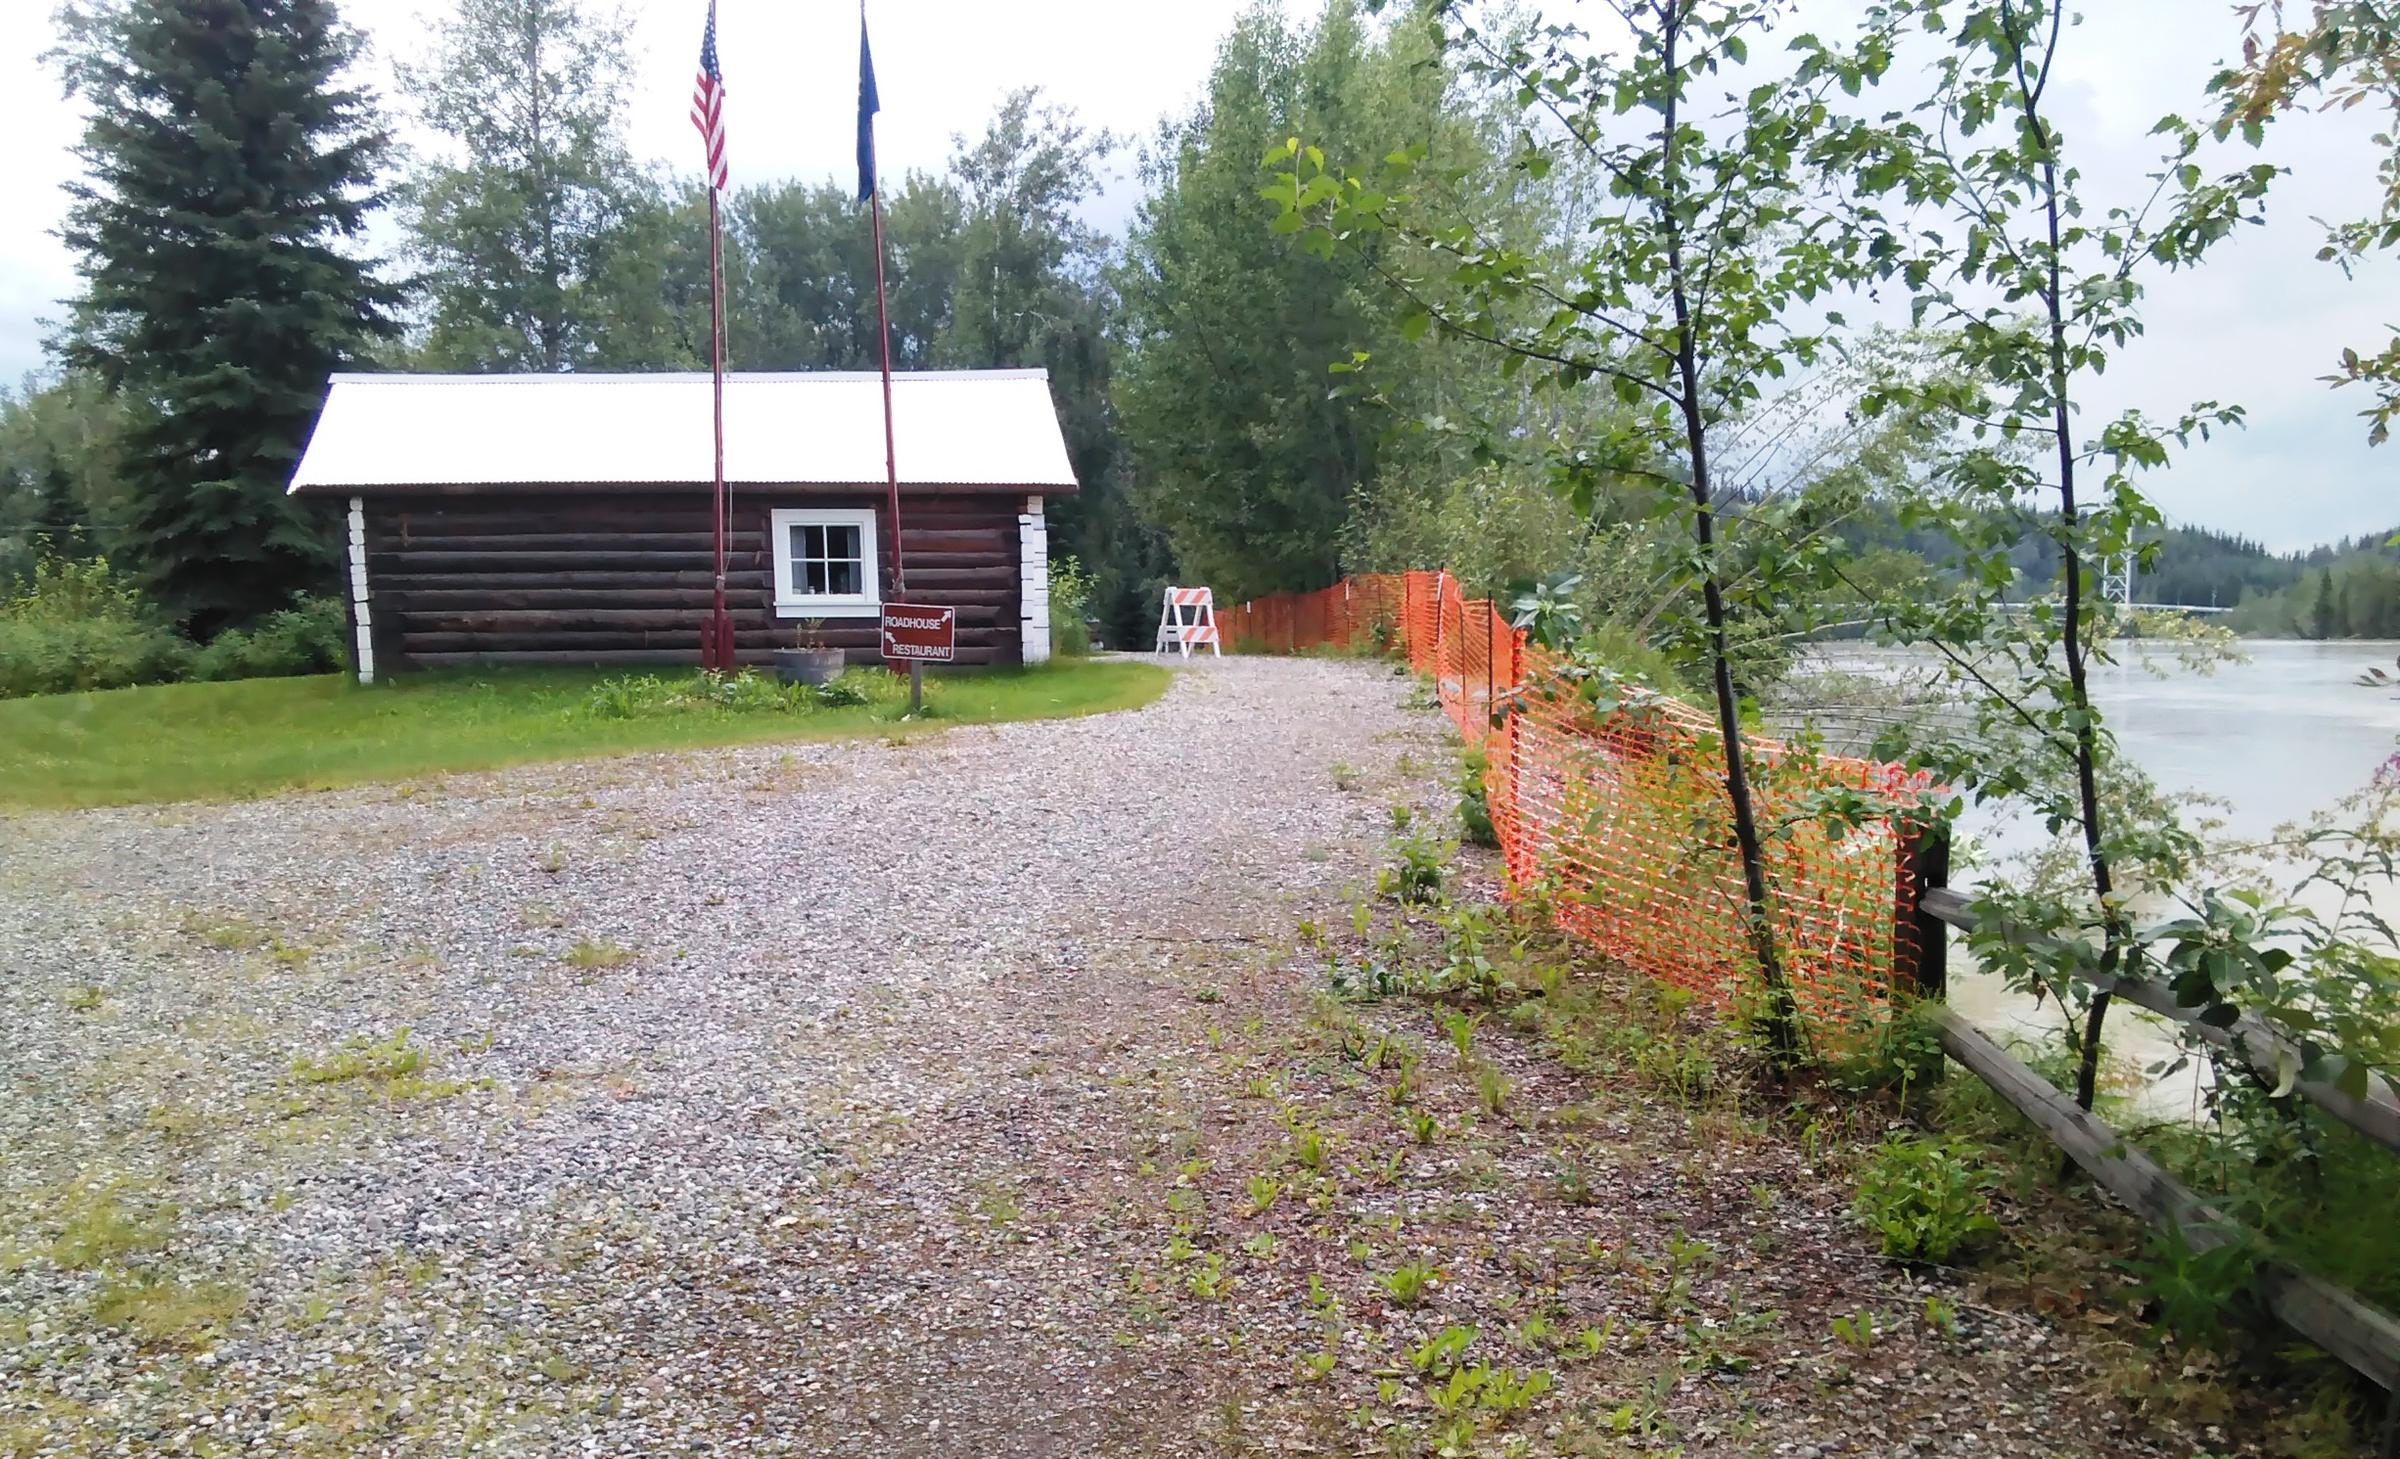 Alaska State Parks is trying to raise money for a riverbank-stabilization project that would halt the Tanana River from washing away the bank that's already been eroded to within 13 feet of this historic cabin at Big Delta State Historical Park. (Photo by Monica Gray/ Alaska State Parks )